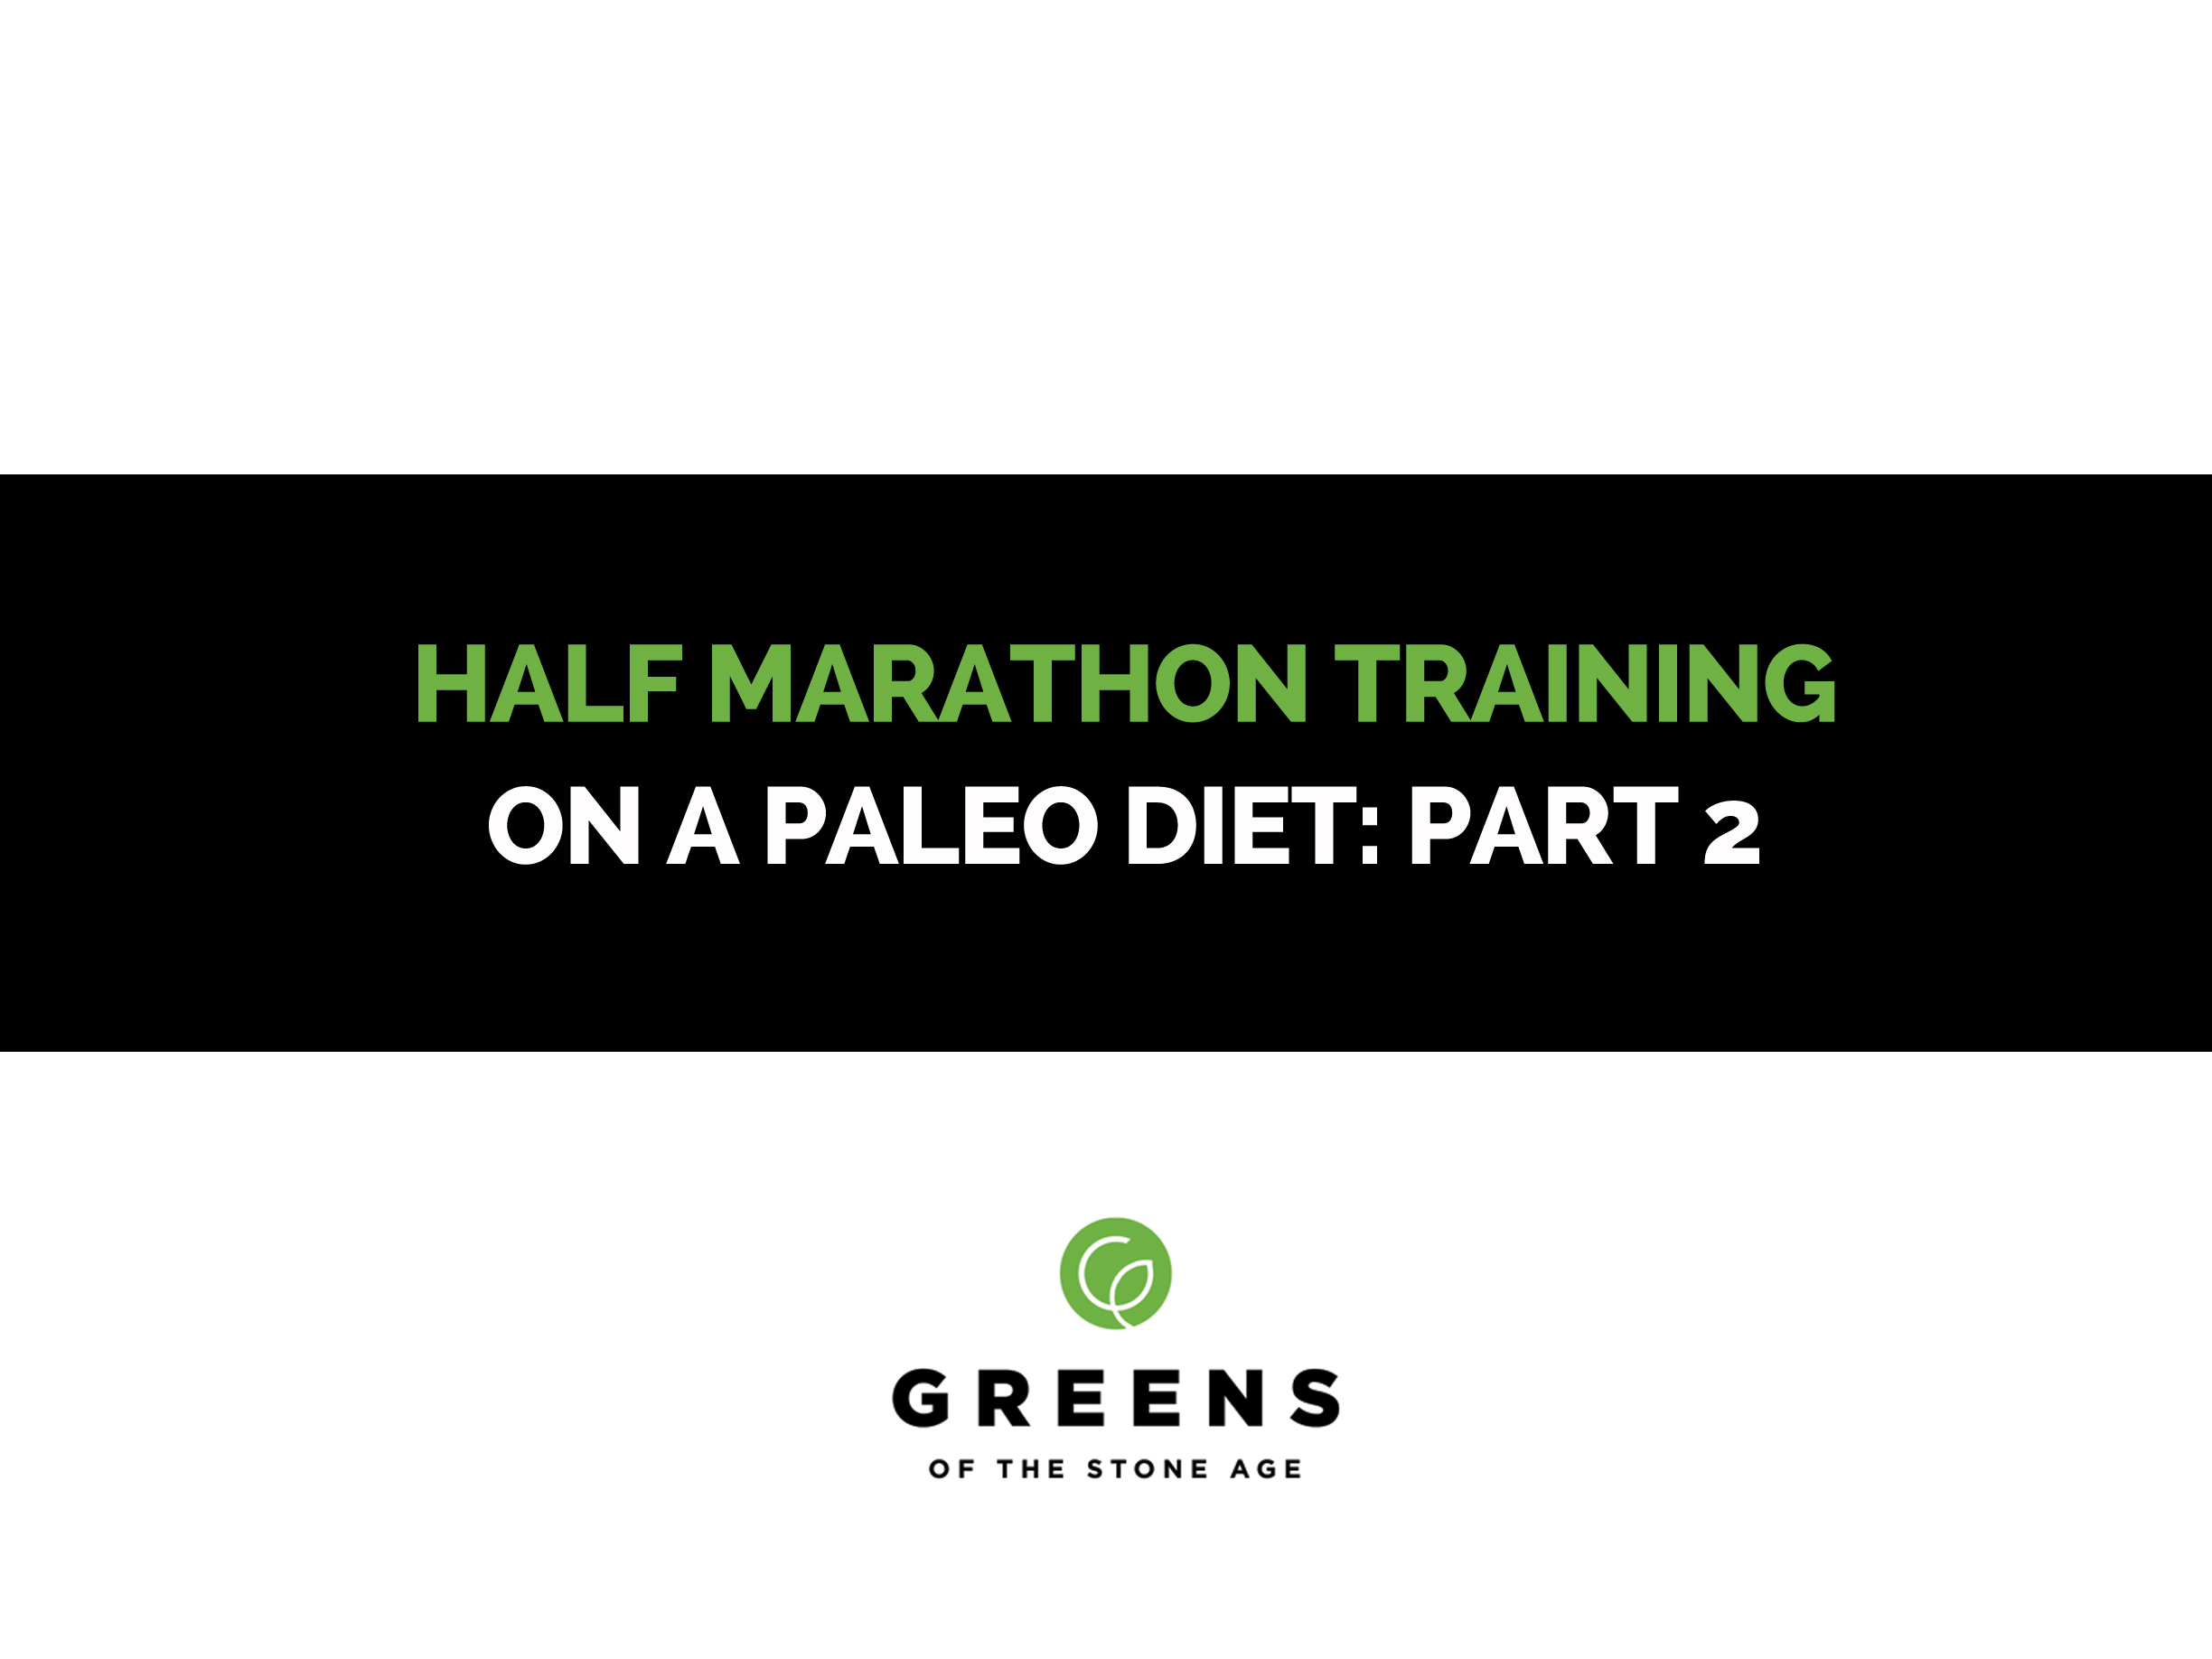 half-marathon-training-on-a-paleo-diet-part-2